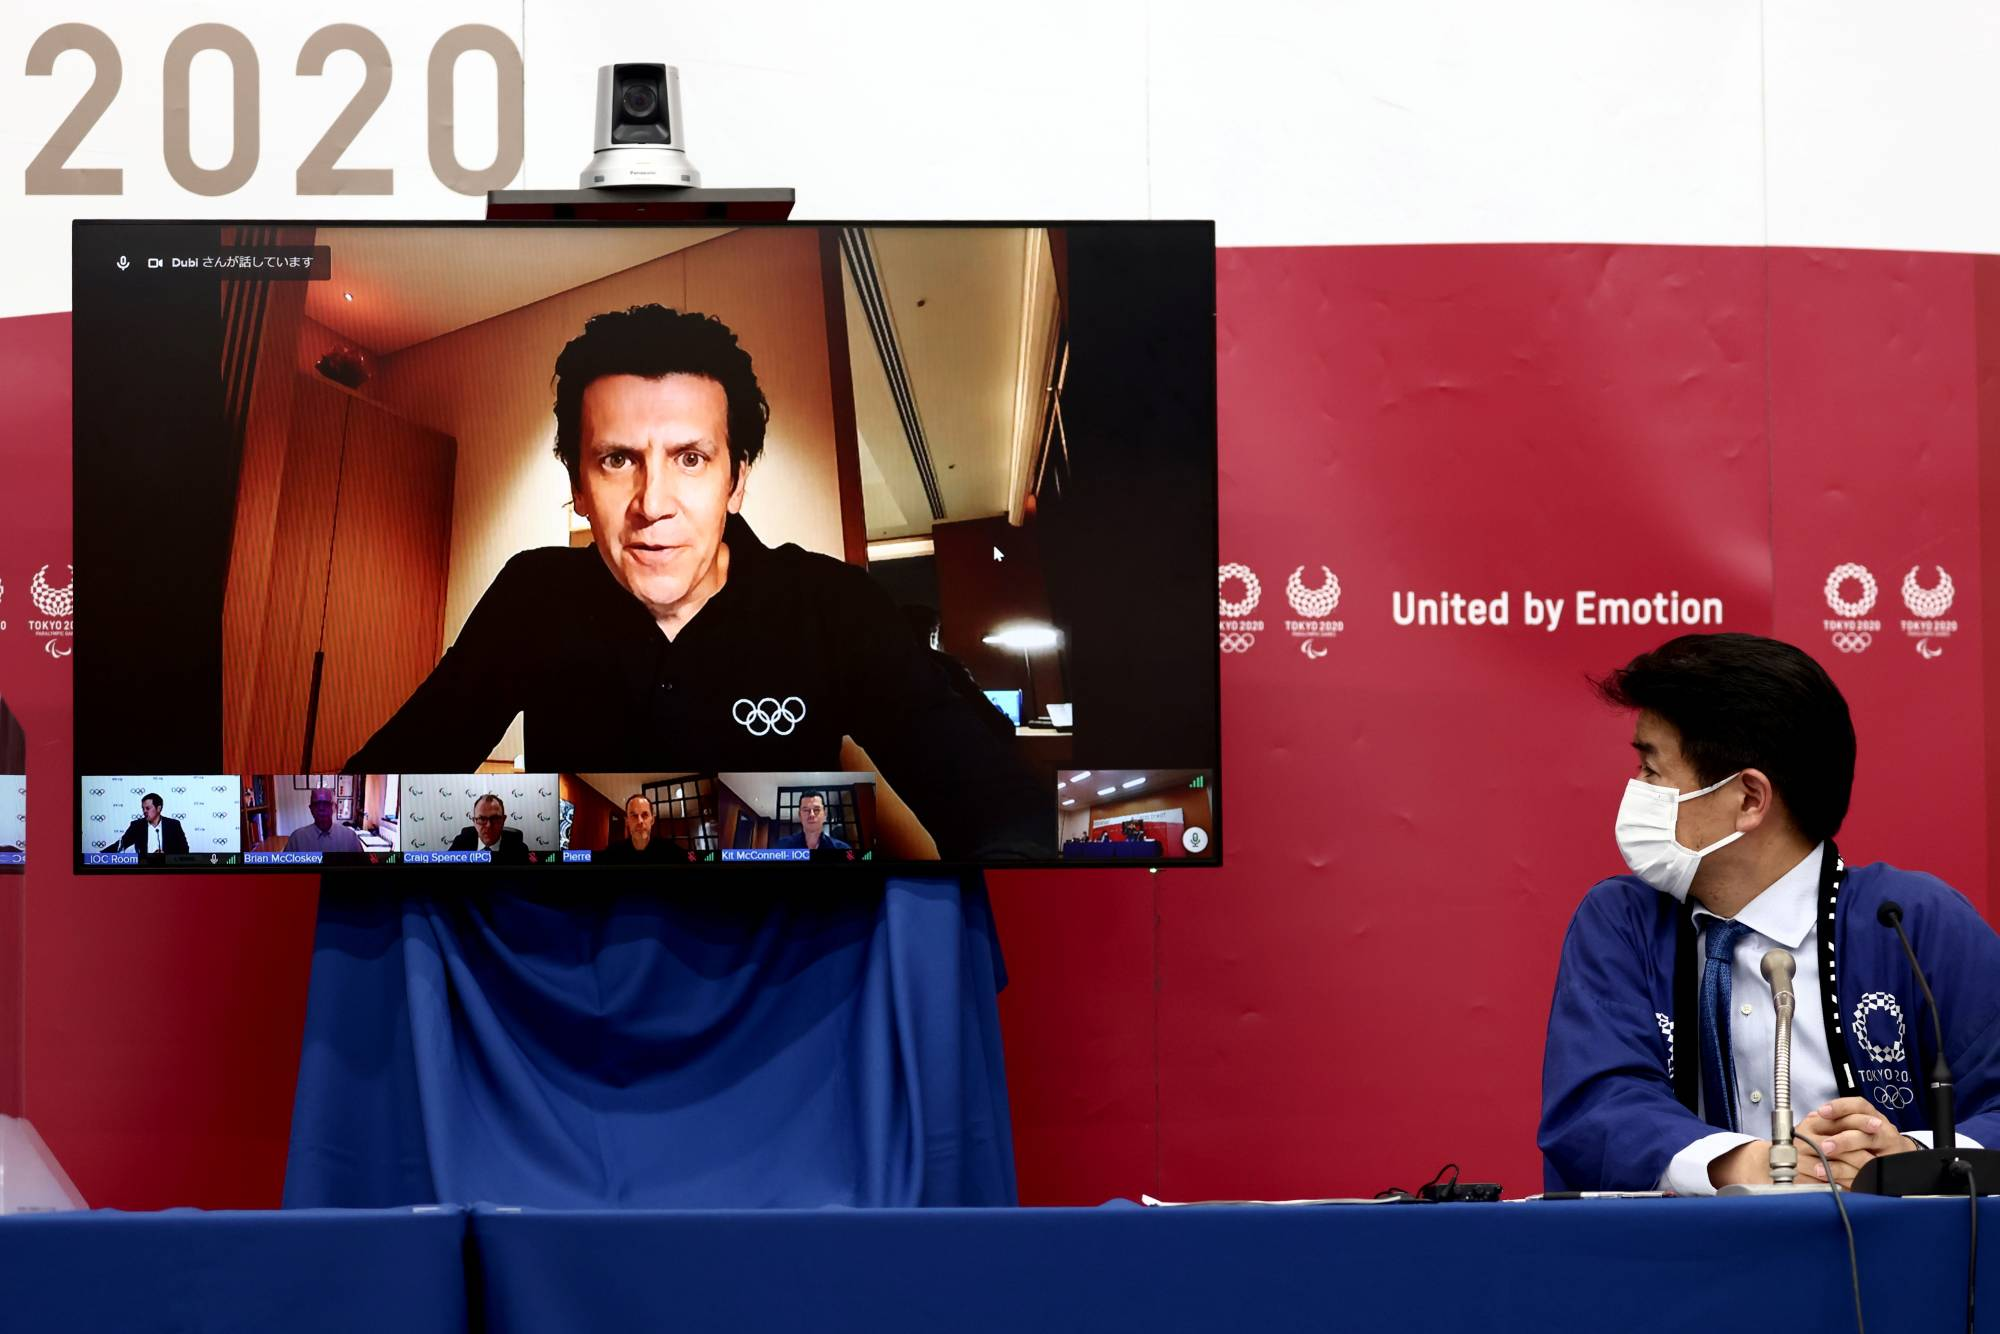 IOC Olympic Games Executive Director Christophe Dubi speaks as Tokyo 2020 Games Delivery Officer Hidemasa Nakamura looks on during a news conference for the presentation of the latest version of the Tokyo Olympics' so-called playbook in Tokyo on Tuesday. | POOL / VIA REUTERS